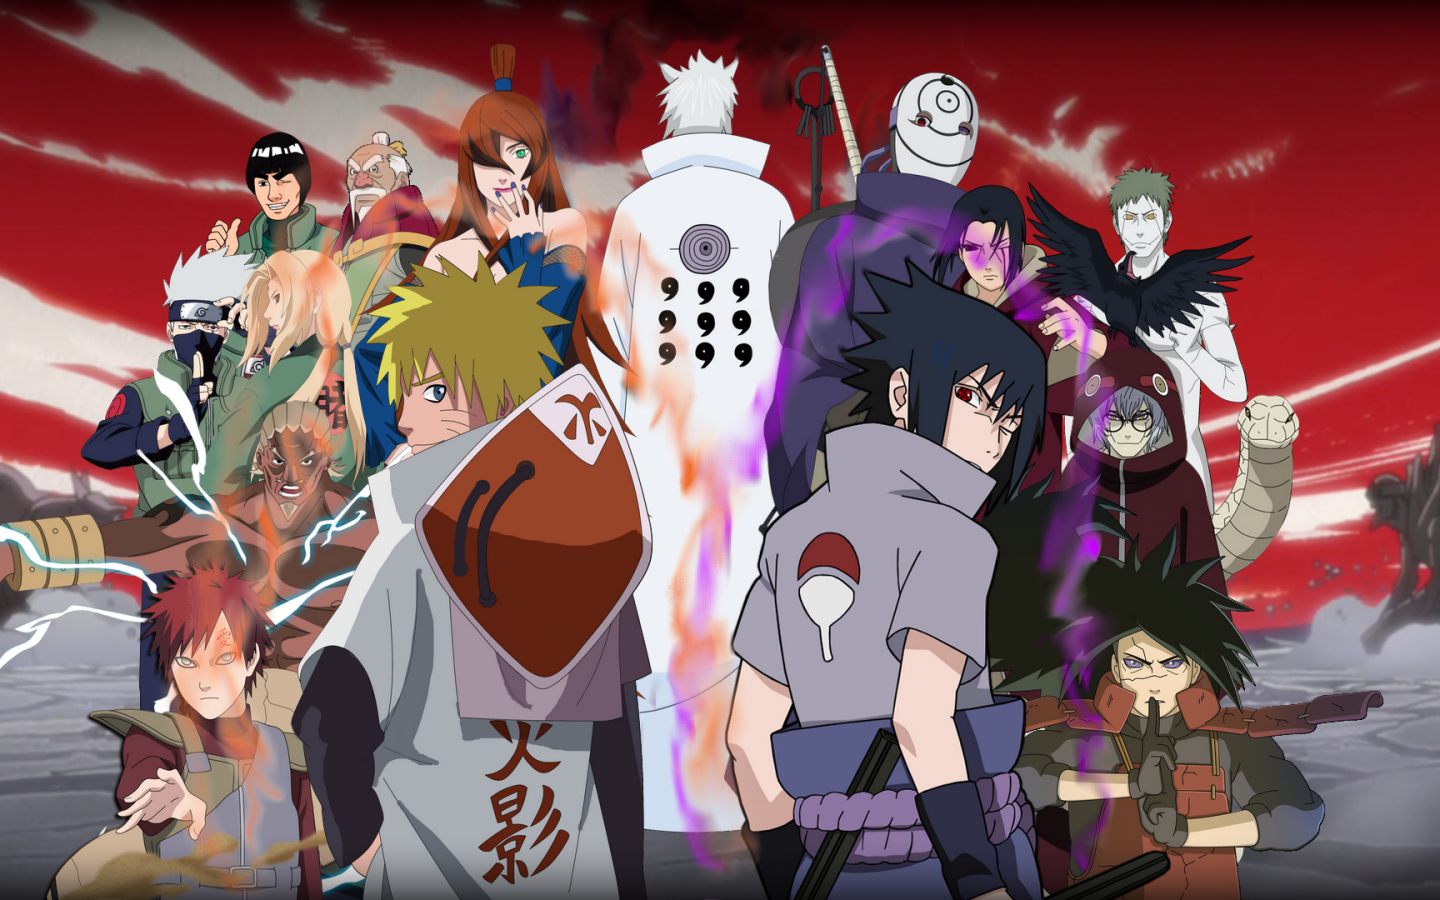 from Deandre naruto shippuden characters naked